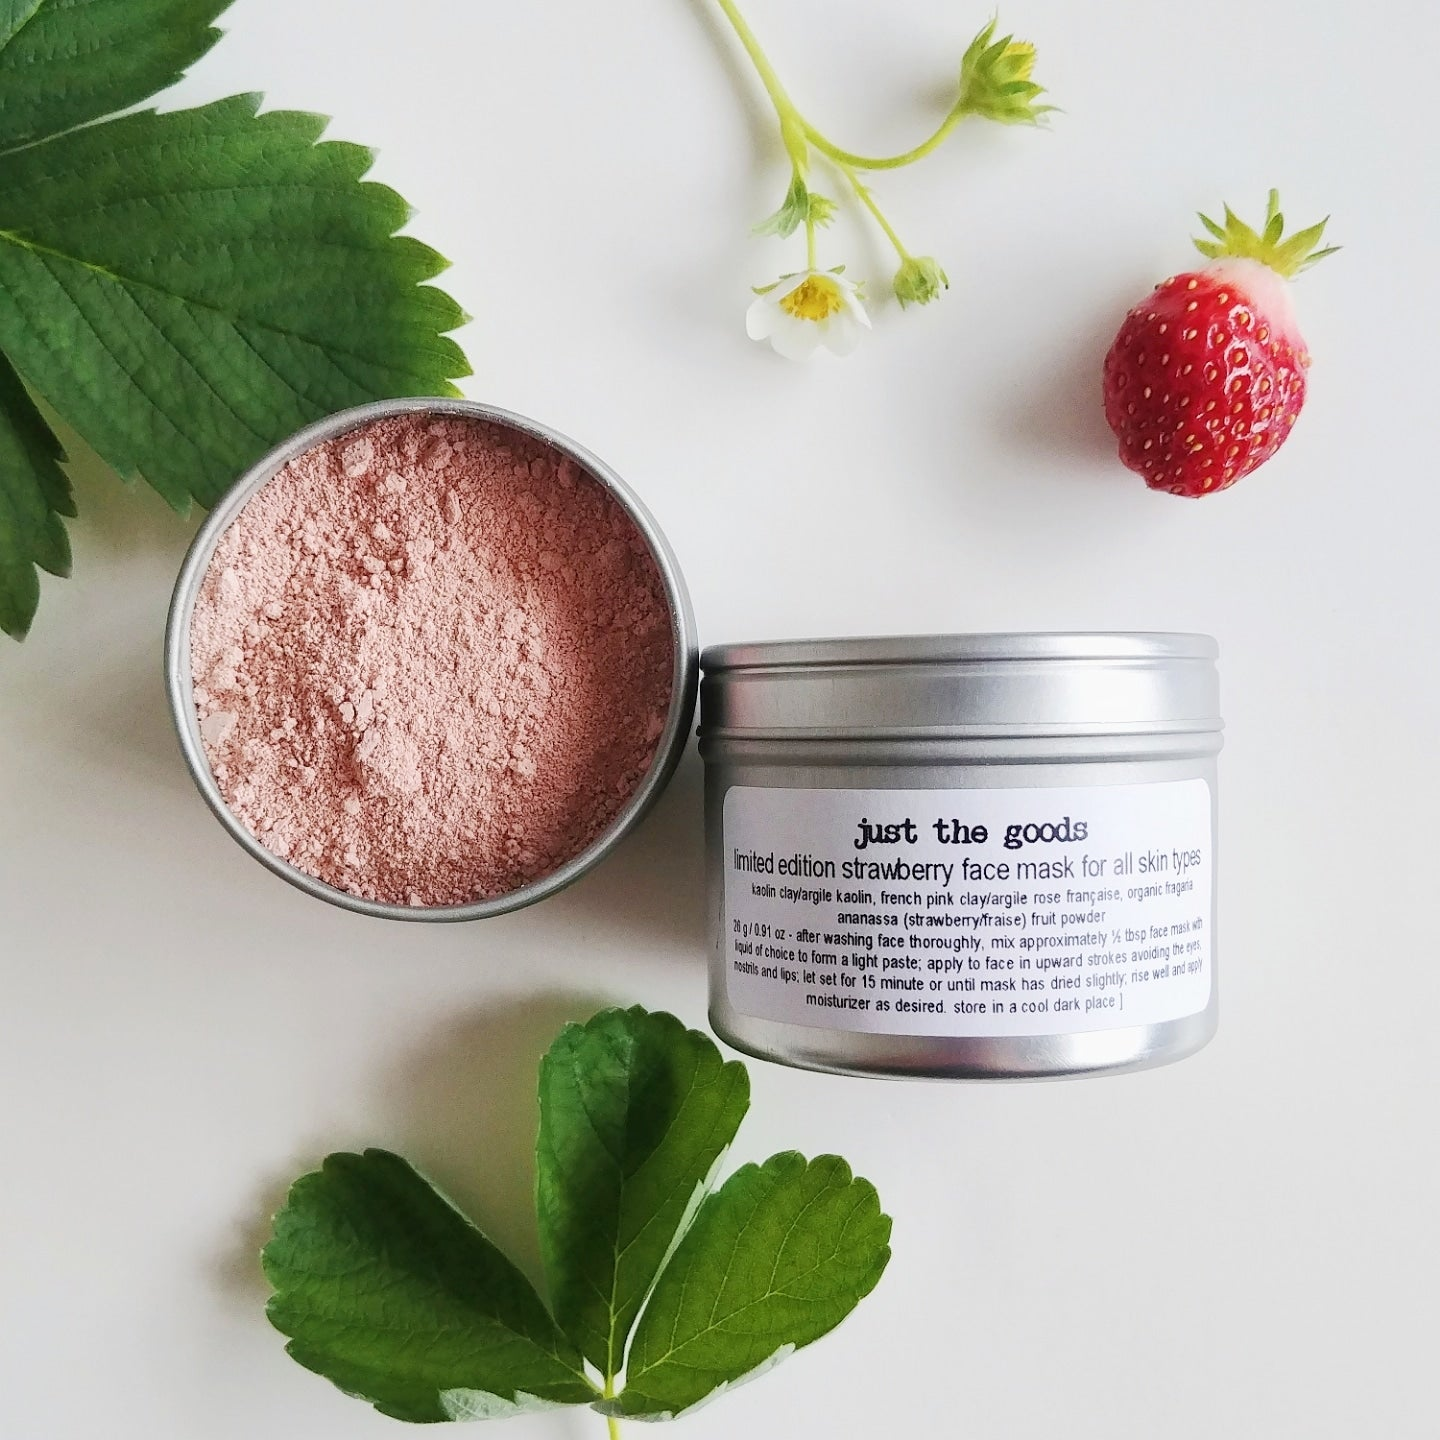 Limited Edition Vegan Strawberry Face Mask For Most Skin Types Justthegoods